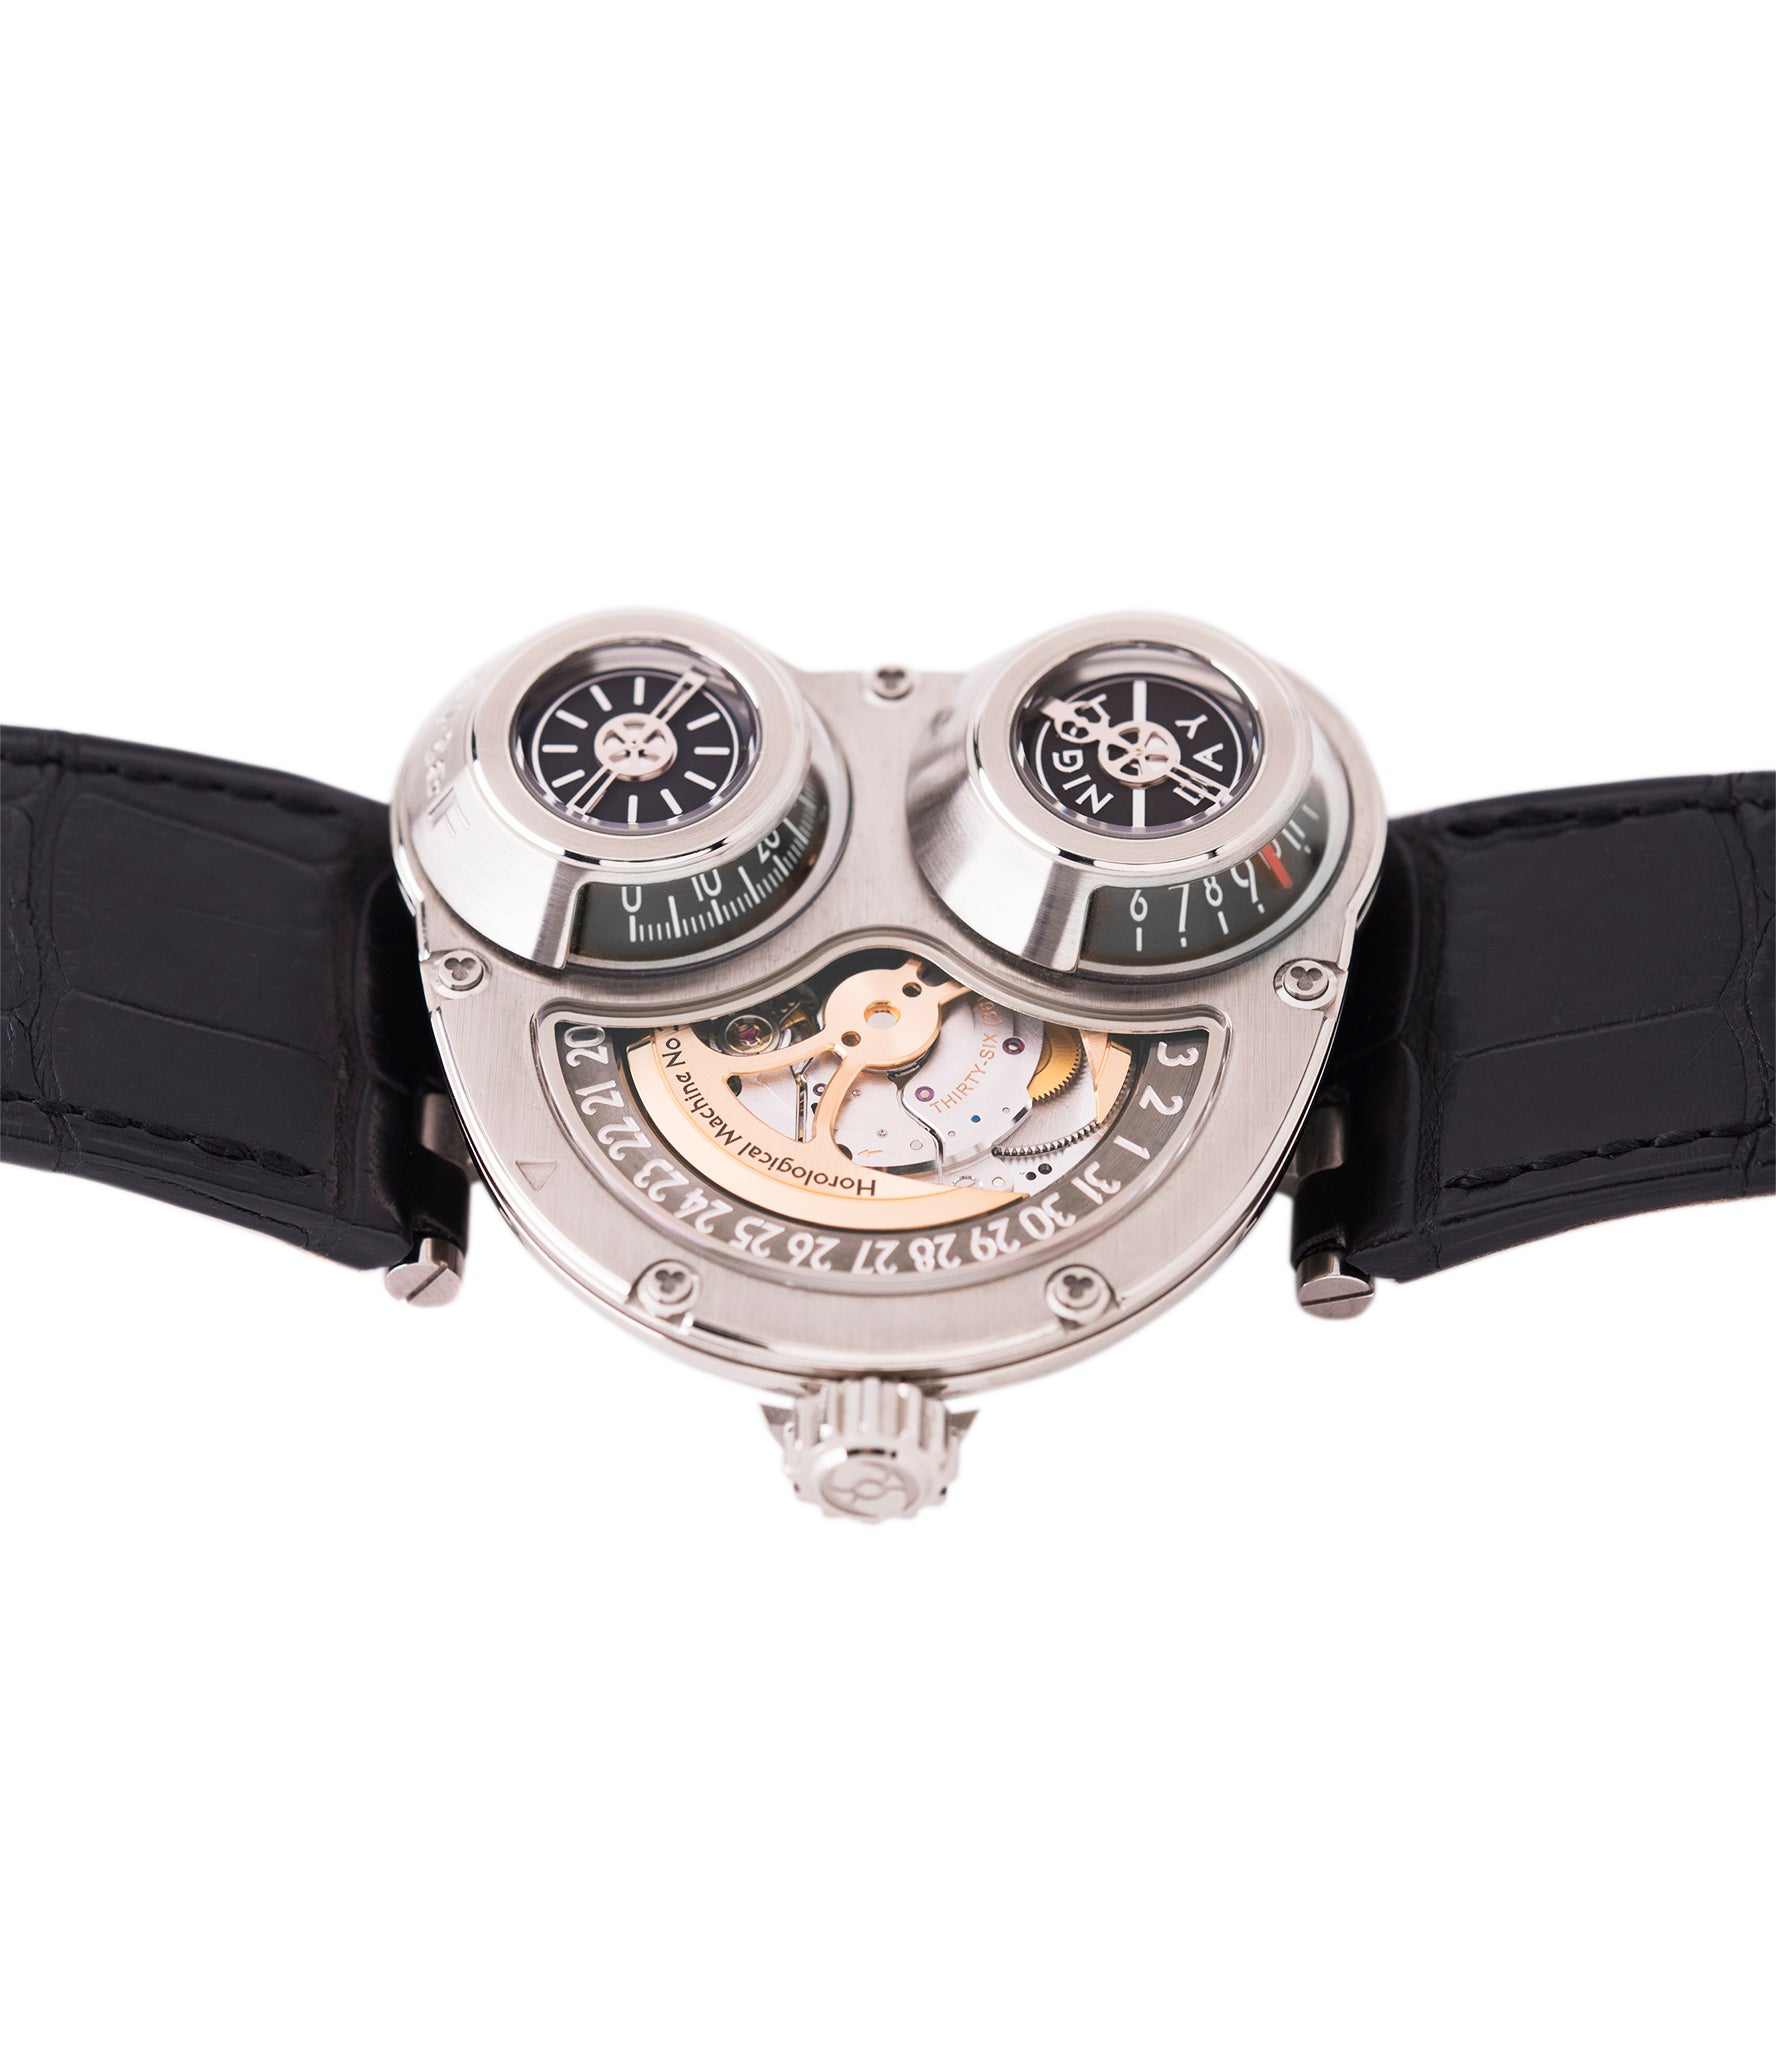 Max Busser Wiederrecht MB&F Sidewinder Horological Machine HM3 white gold watch by independent watchmaker for sale online at A Collected Man London UK specialist of rare watches